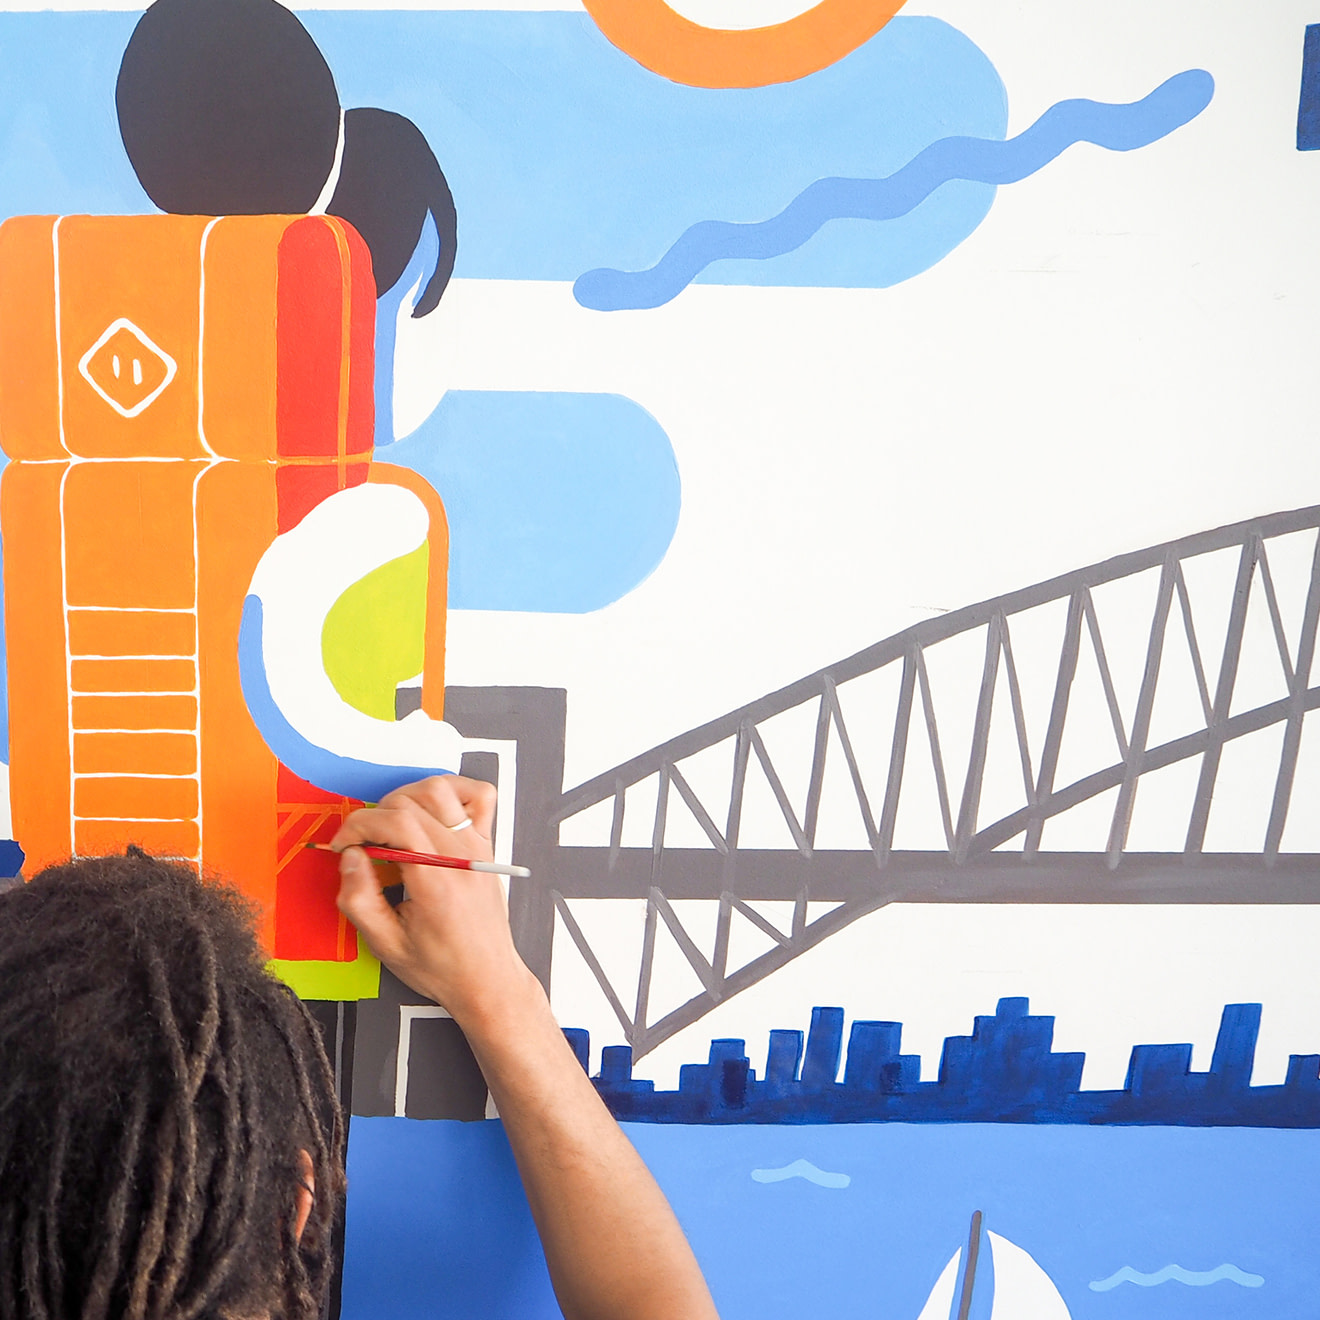 Man painting an orange backpack on a woman as part of a larger mural scene.